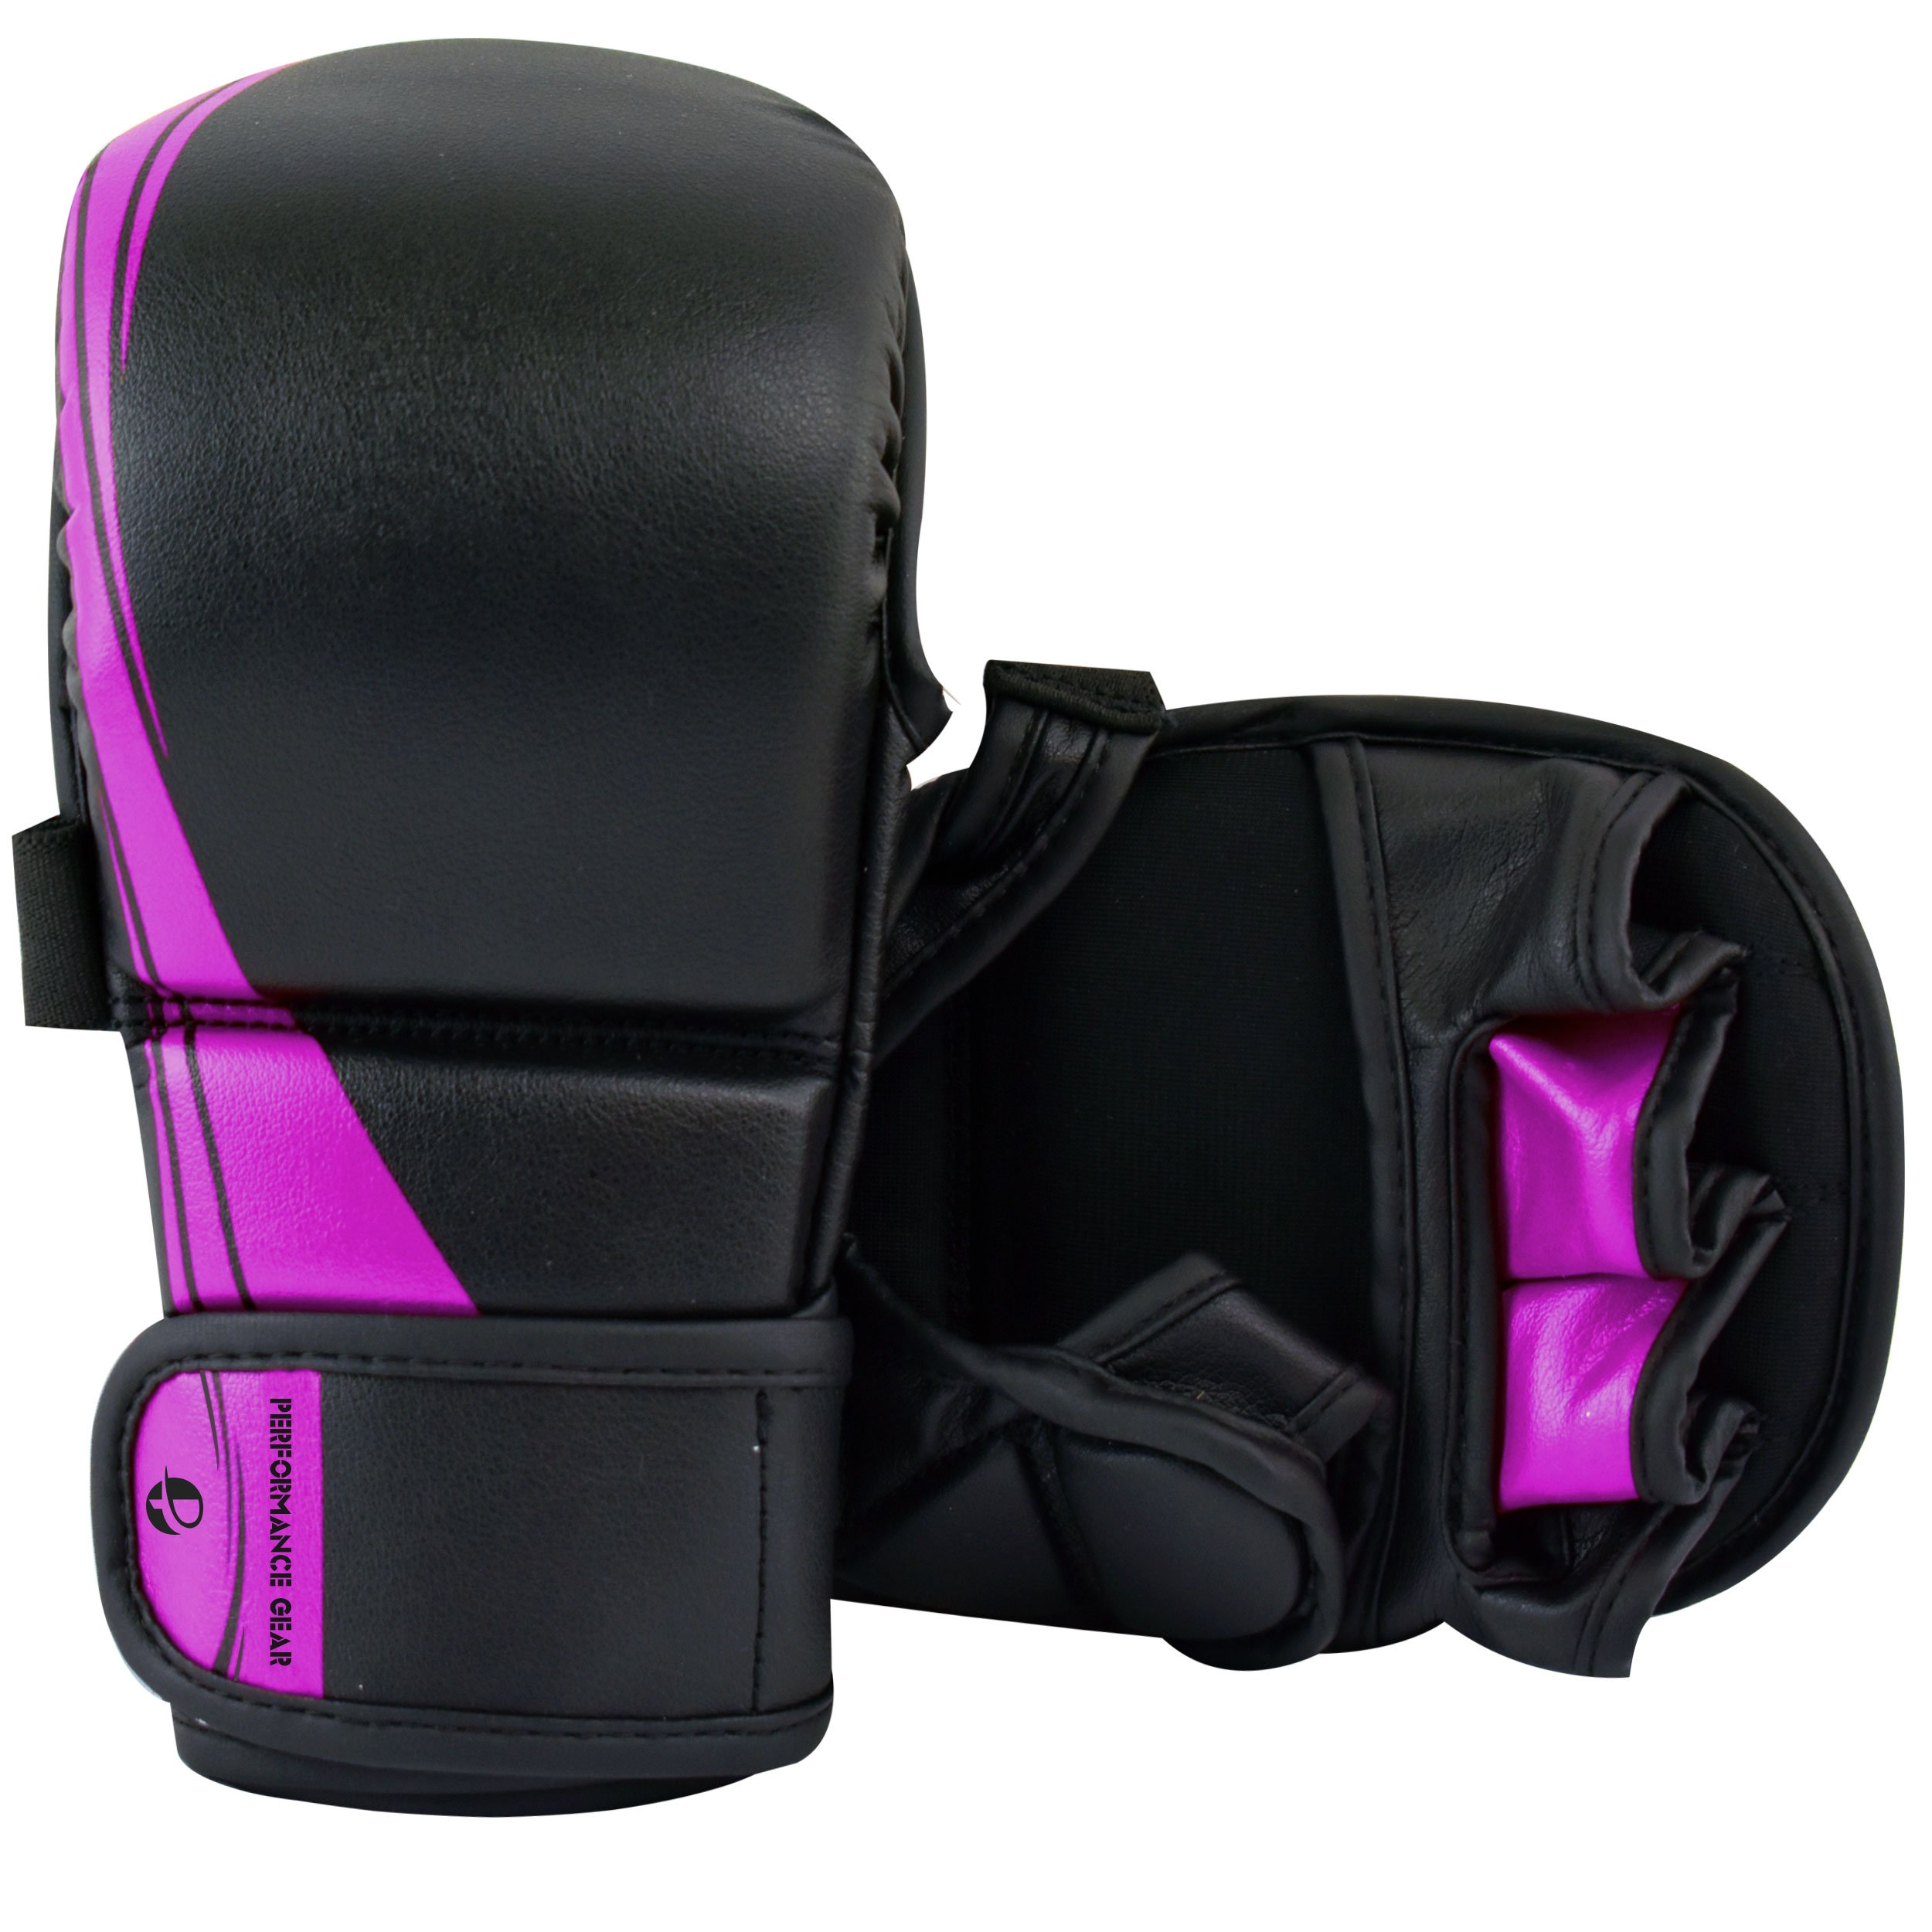 PMG MMA Sparring Gloves